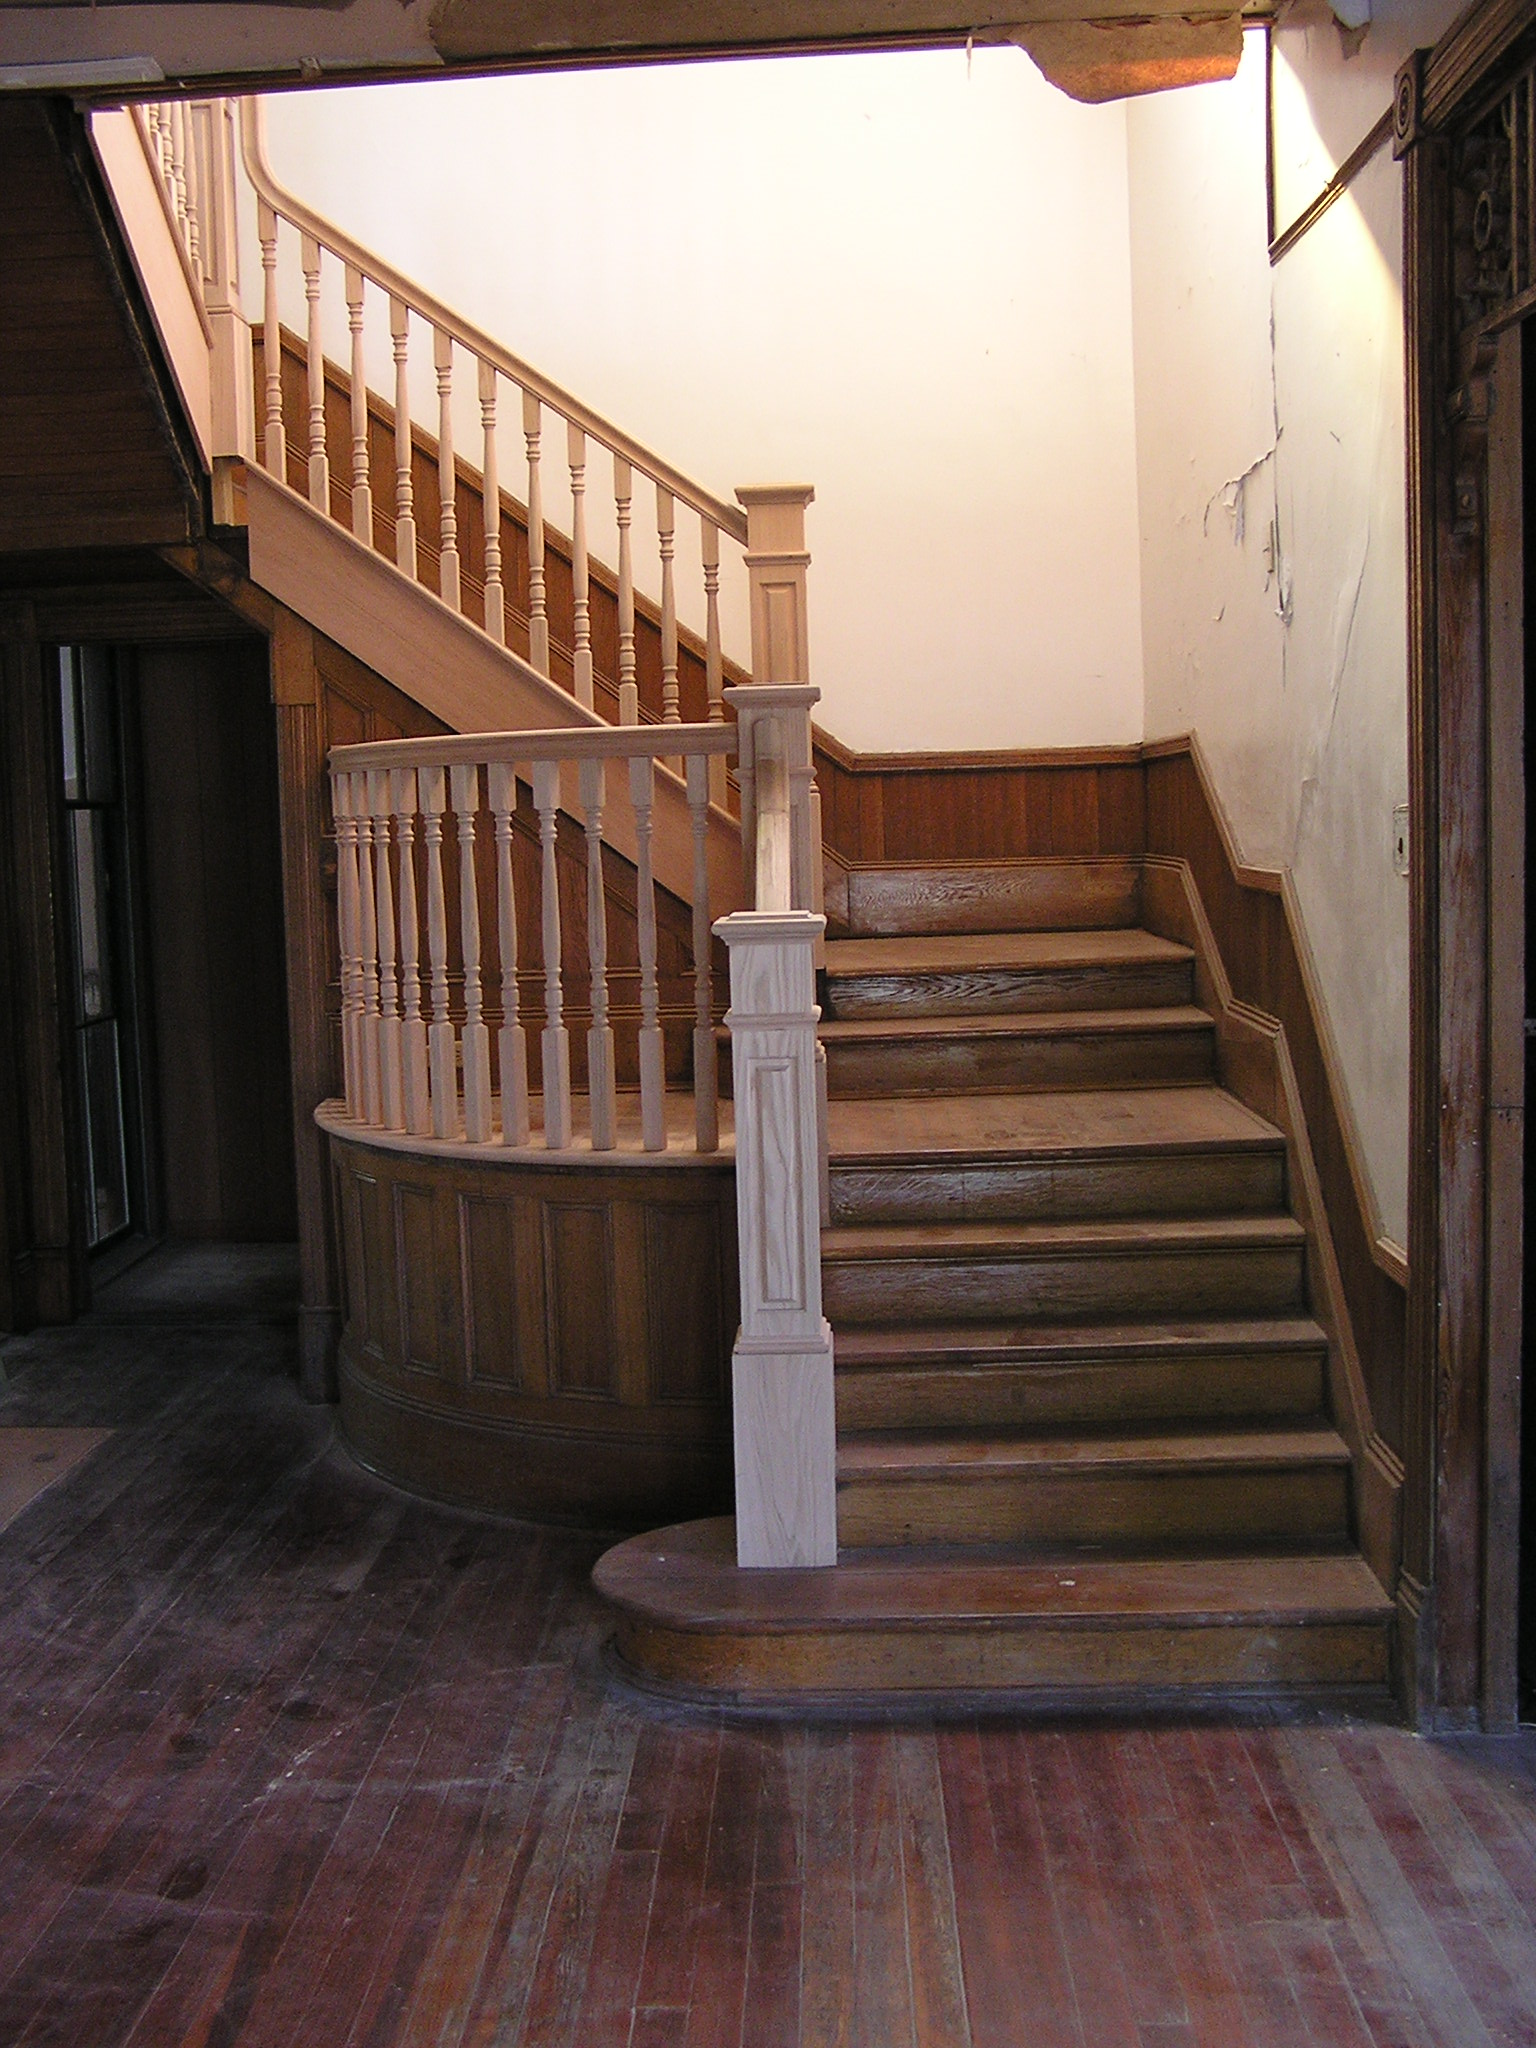 Oak stair case replaced in an old 1800 farm house, the original stair were stolen years ago while the house set empty. Today the house, out buildings, and Barn sitting on 5 ac. of land have been turn into an Urban Farm. Located on Main Street in Historic College Park.